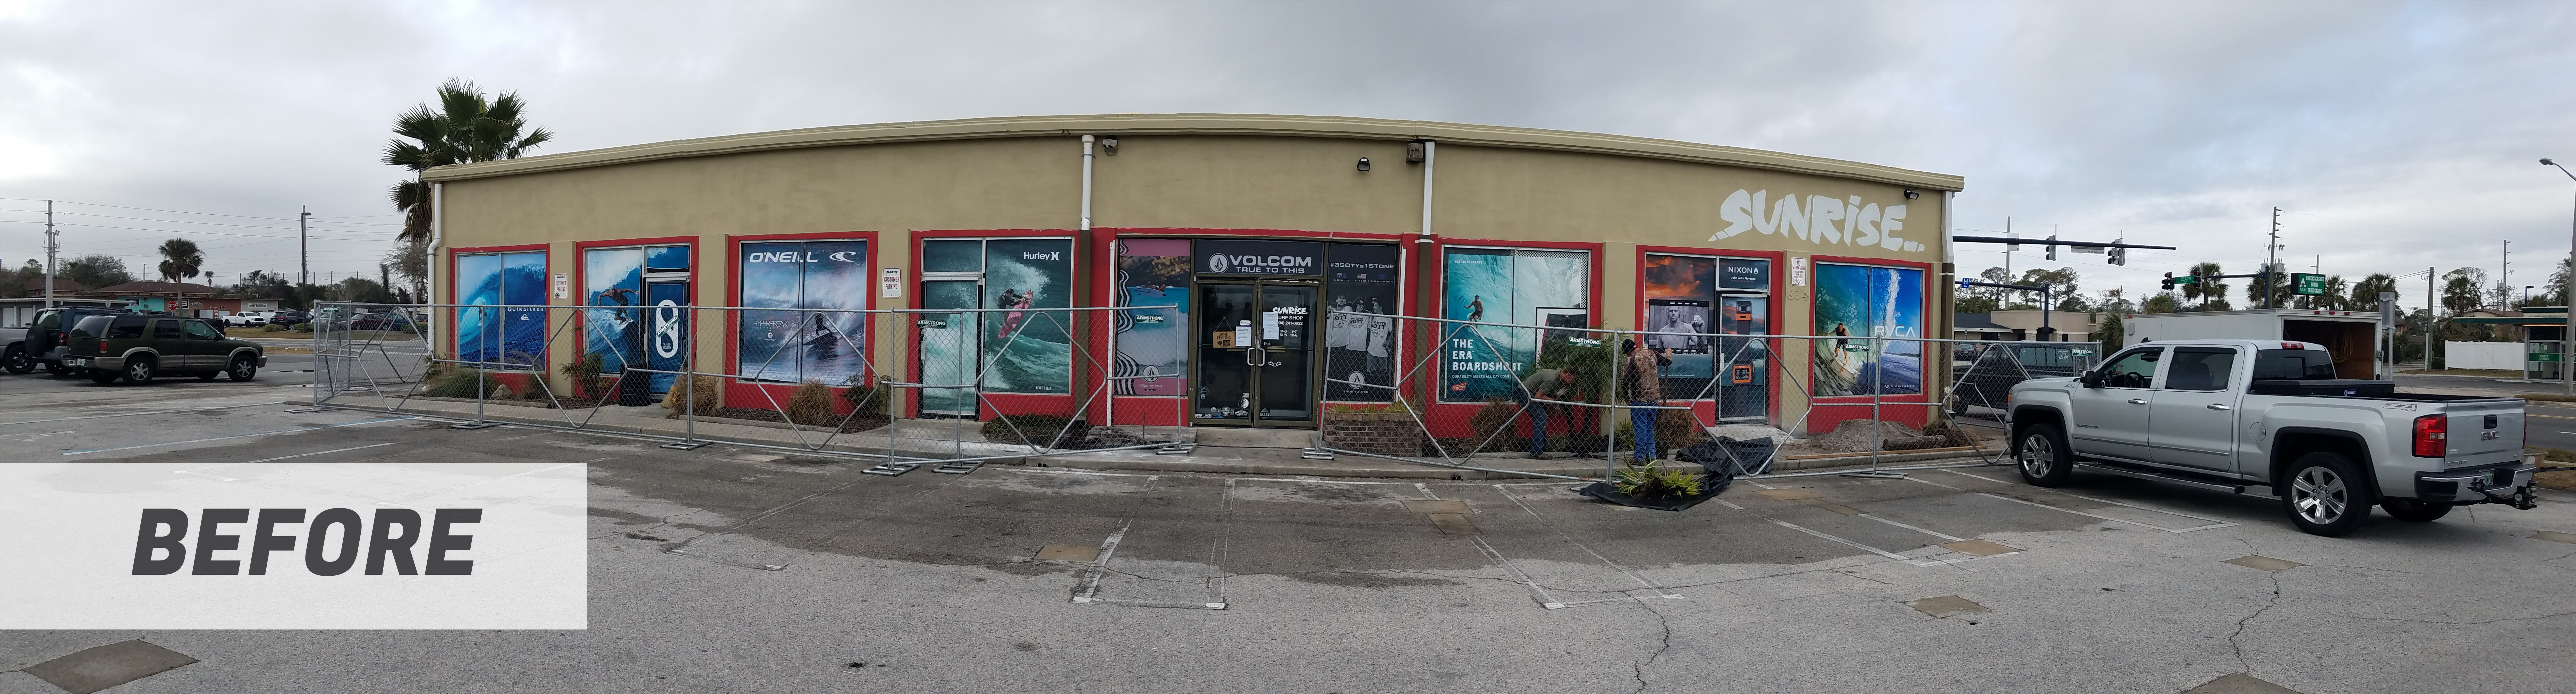 Sunrise Surf Shop exterior before remodel